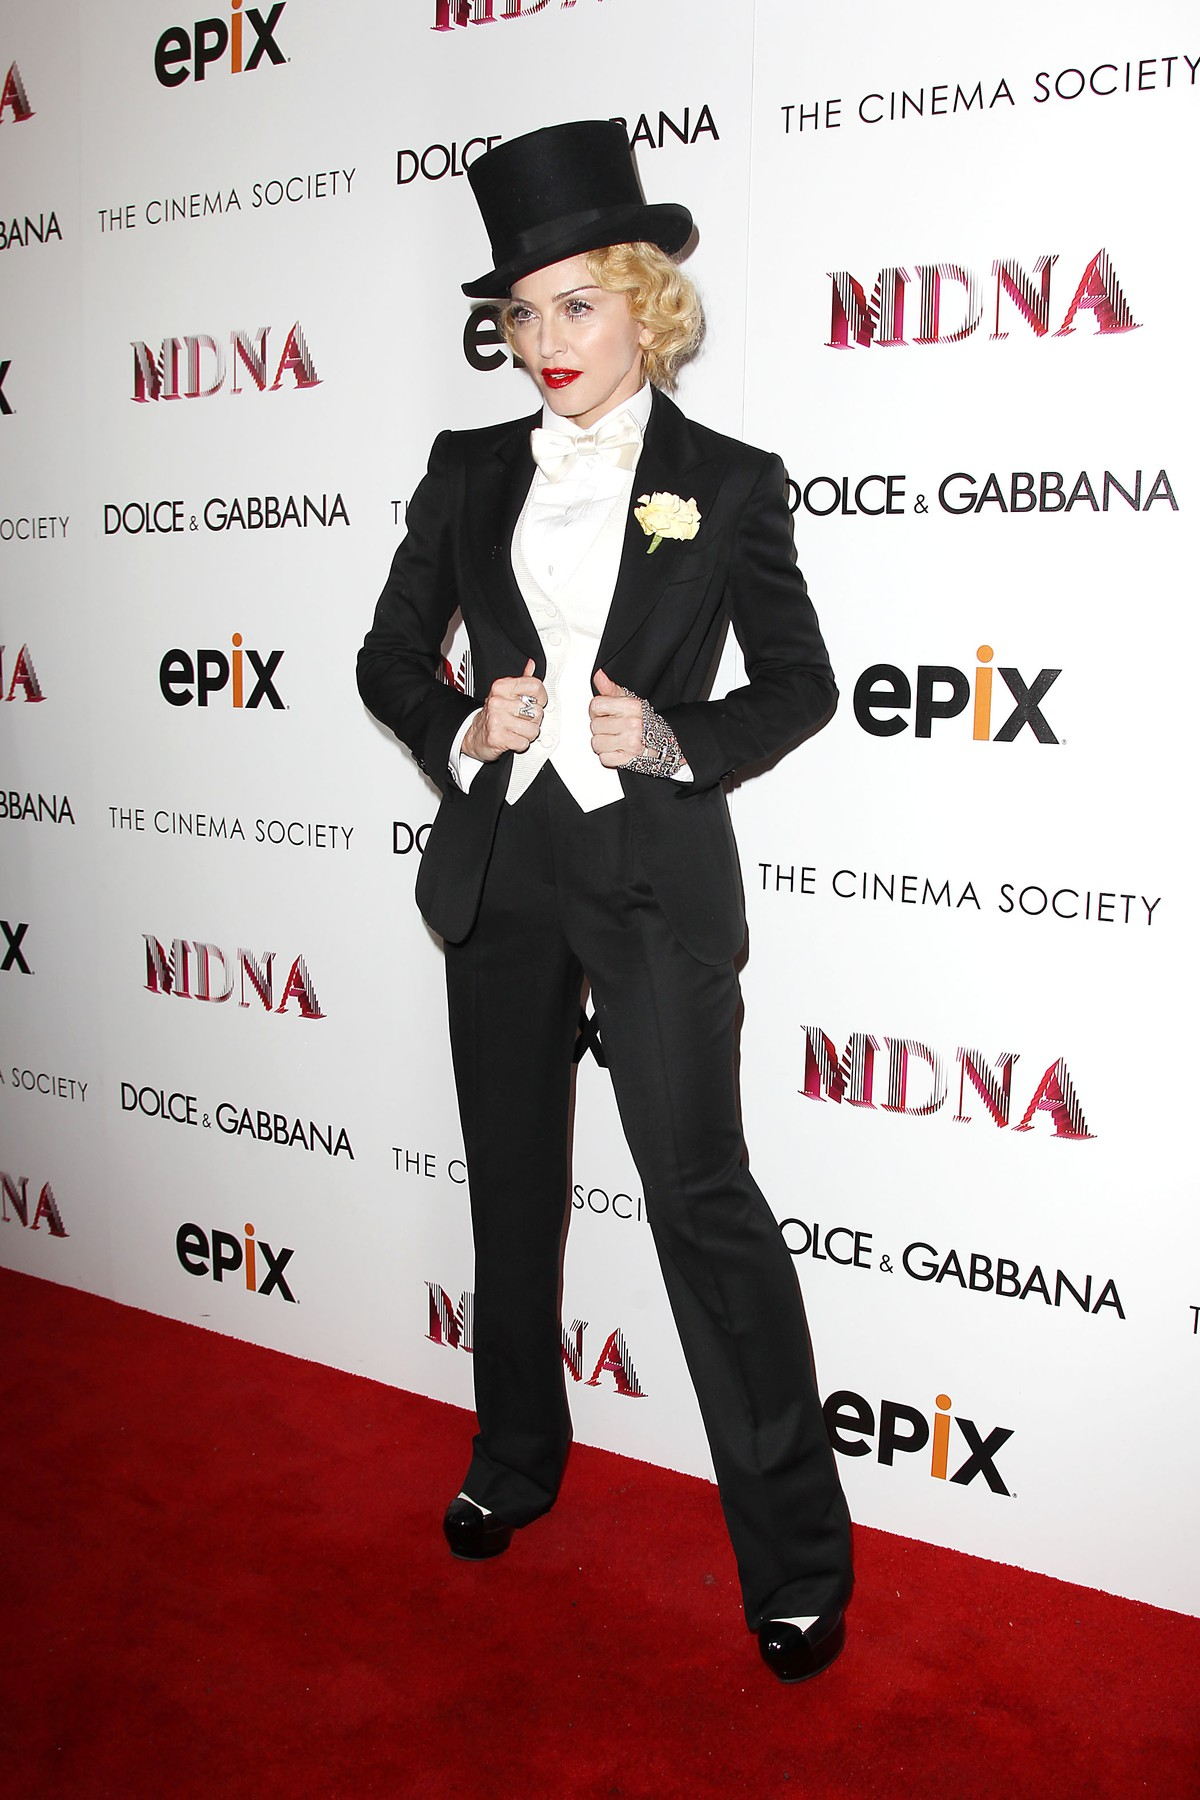 -New York, NY - 06/18/2013 - Dolce & Gabbana and The Cinema Society Present the Epix World Premiere of Madonna: the MDNA Tour.   -PICTURED: Madonna -, Image: 164627972, License: Rights-managed, Restrictions: , Model Release: no, Credit line: Kristina Bumphrey / INSTAR Images / Profimedia